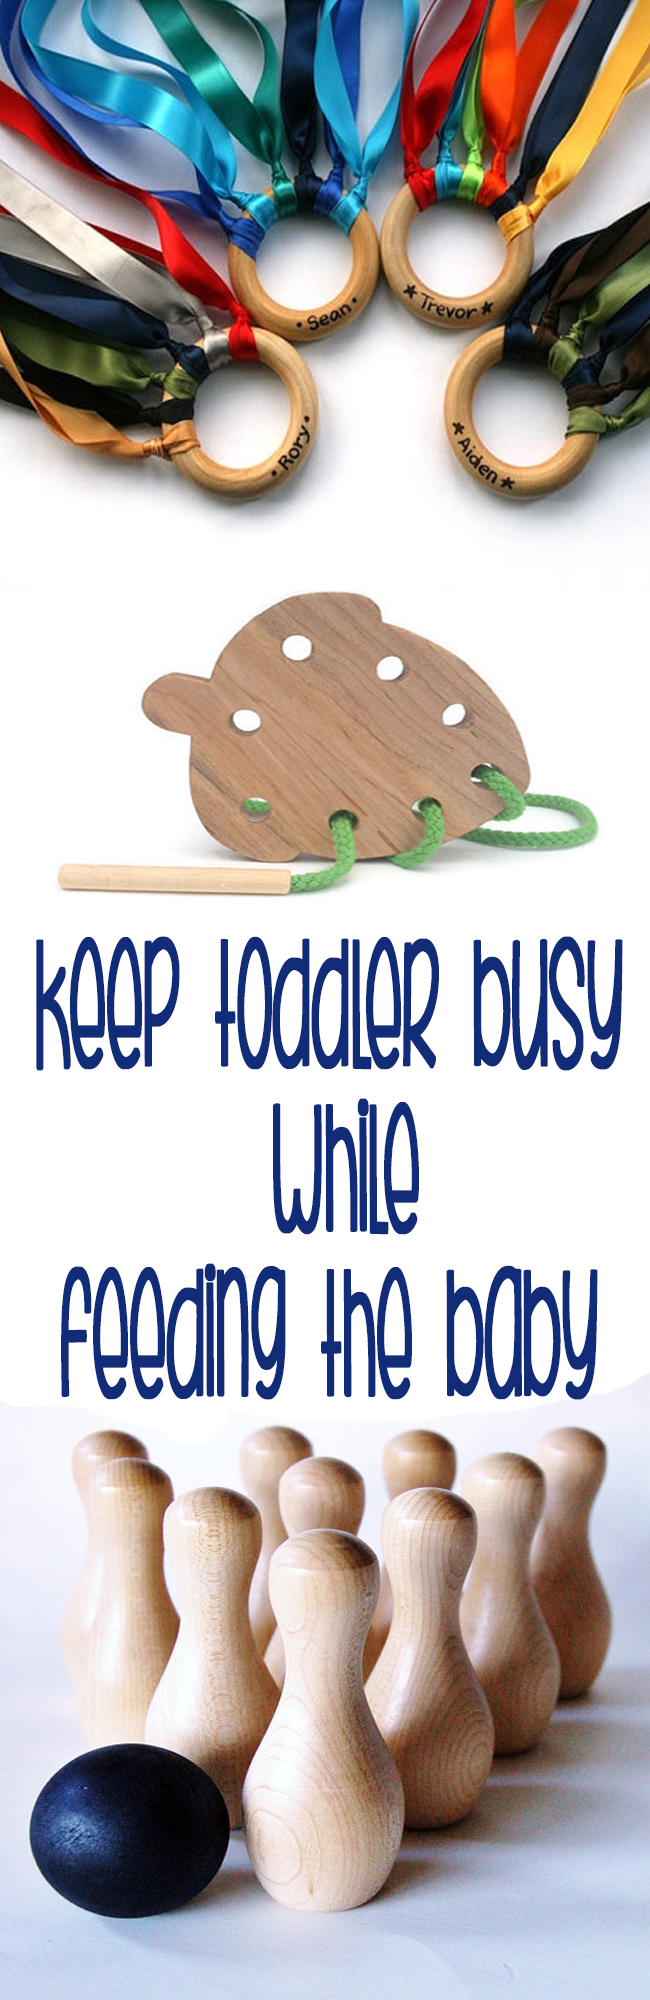 busy-toddler-while-feeding